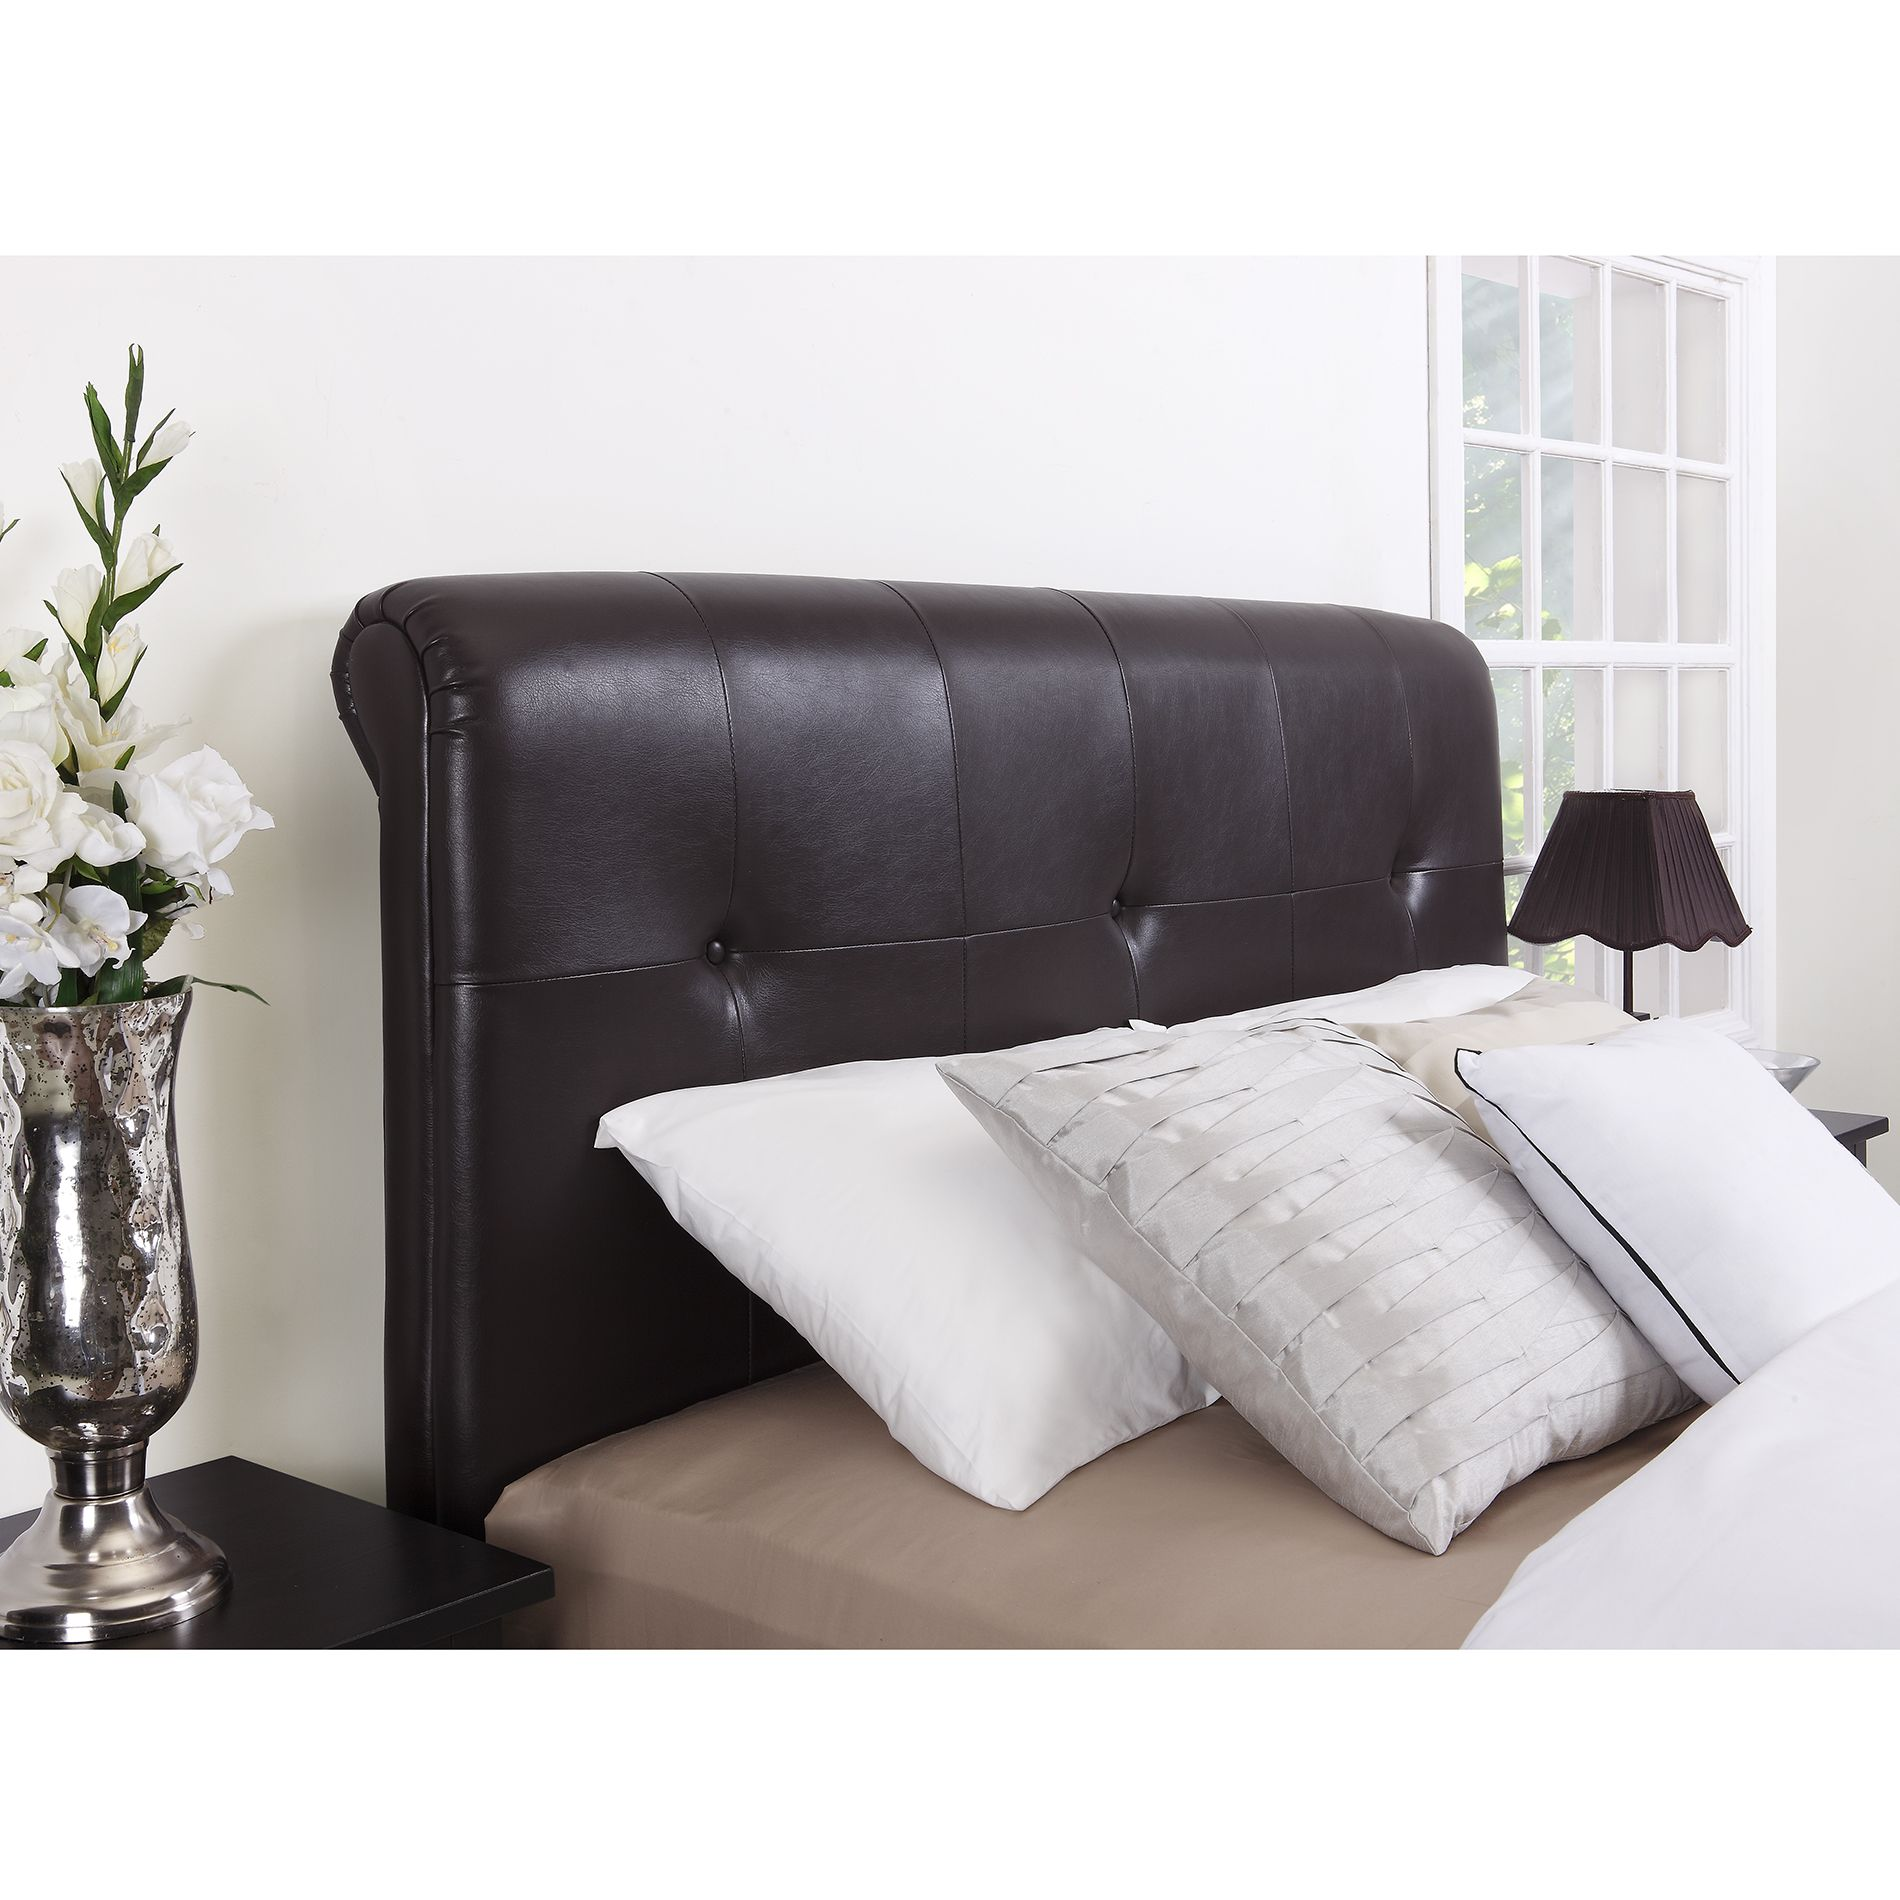 furniture stardust trundle item headboard tufted bed ybr products number b with rotmans ttr twin liberty buy